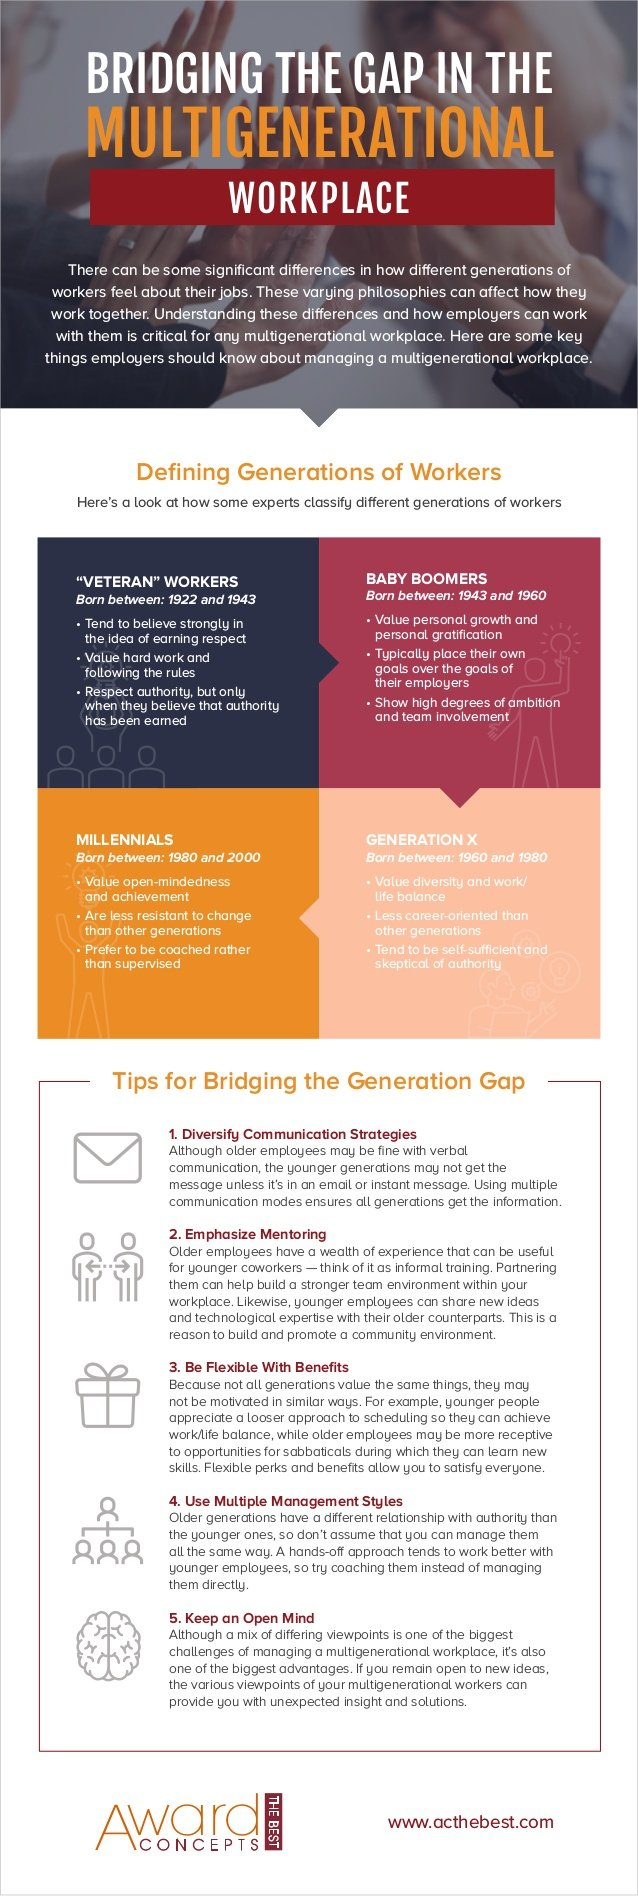 how to bridge the gap in multigenerational workforce